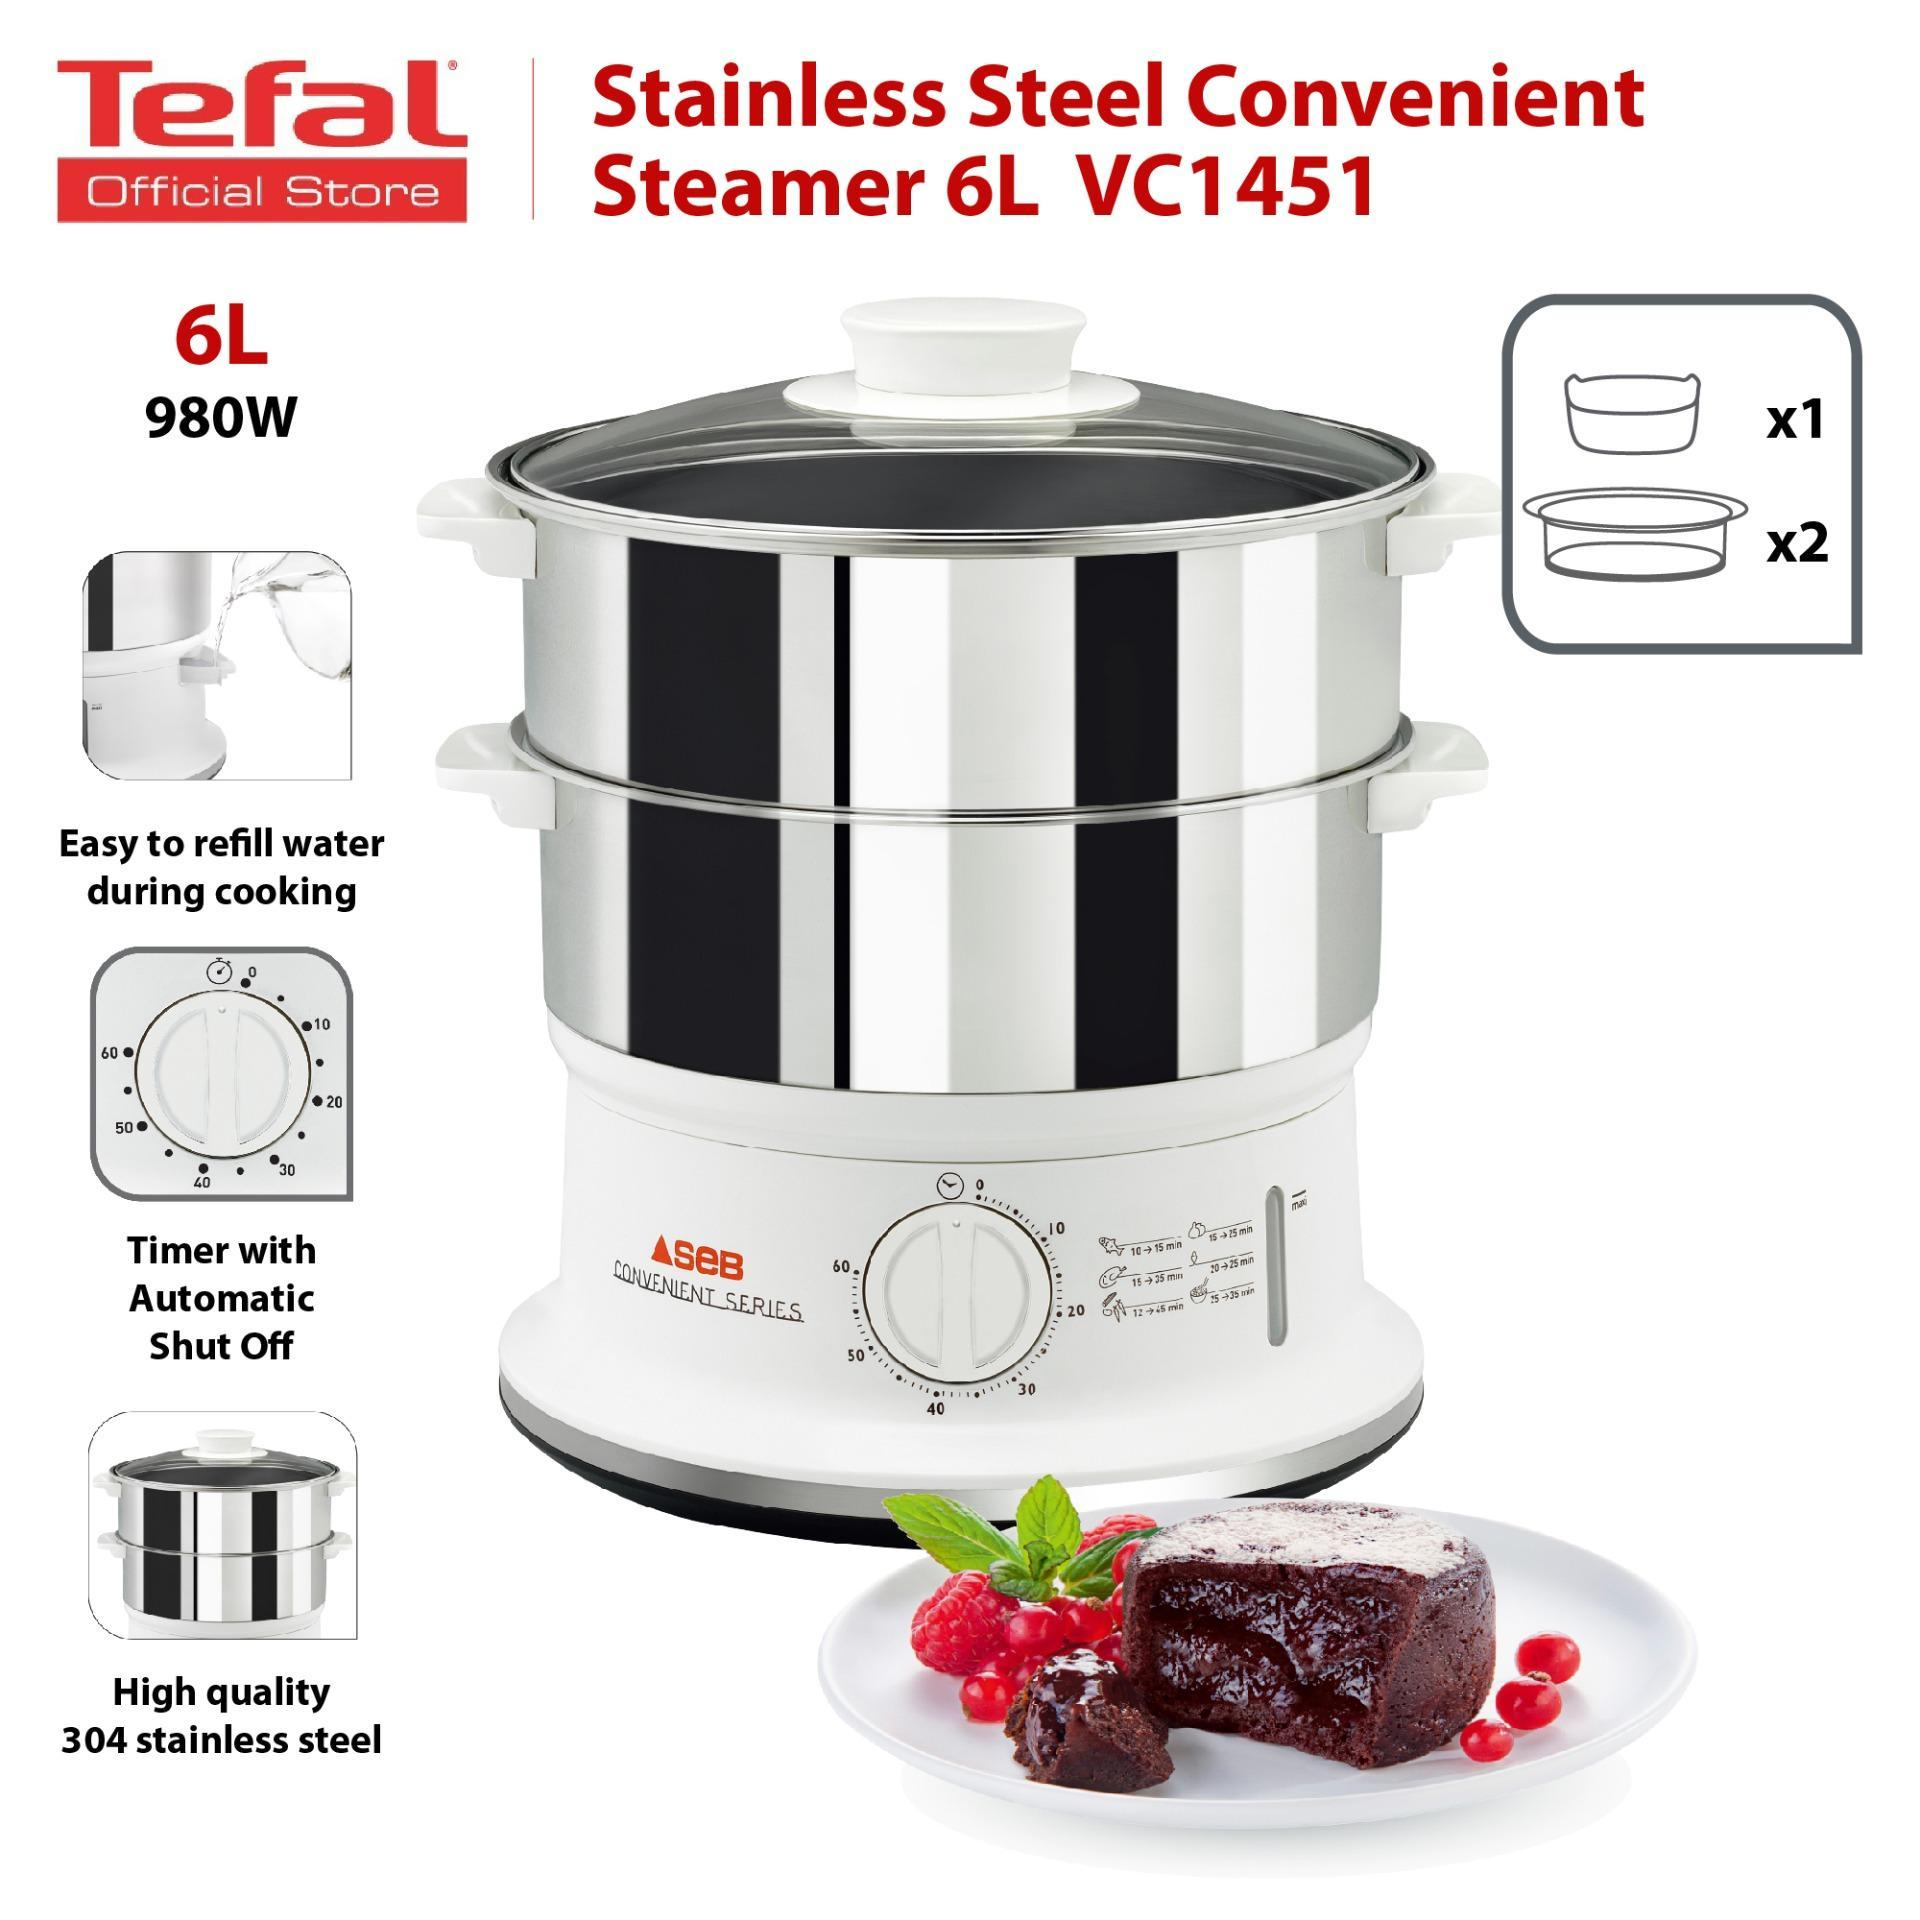 Tefal Convenient Stainless Steel Steamer